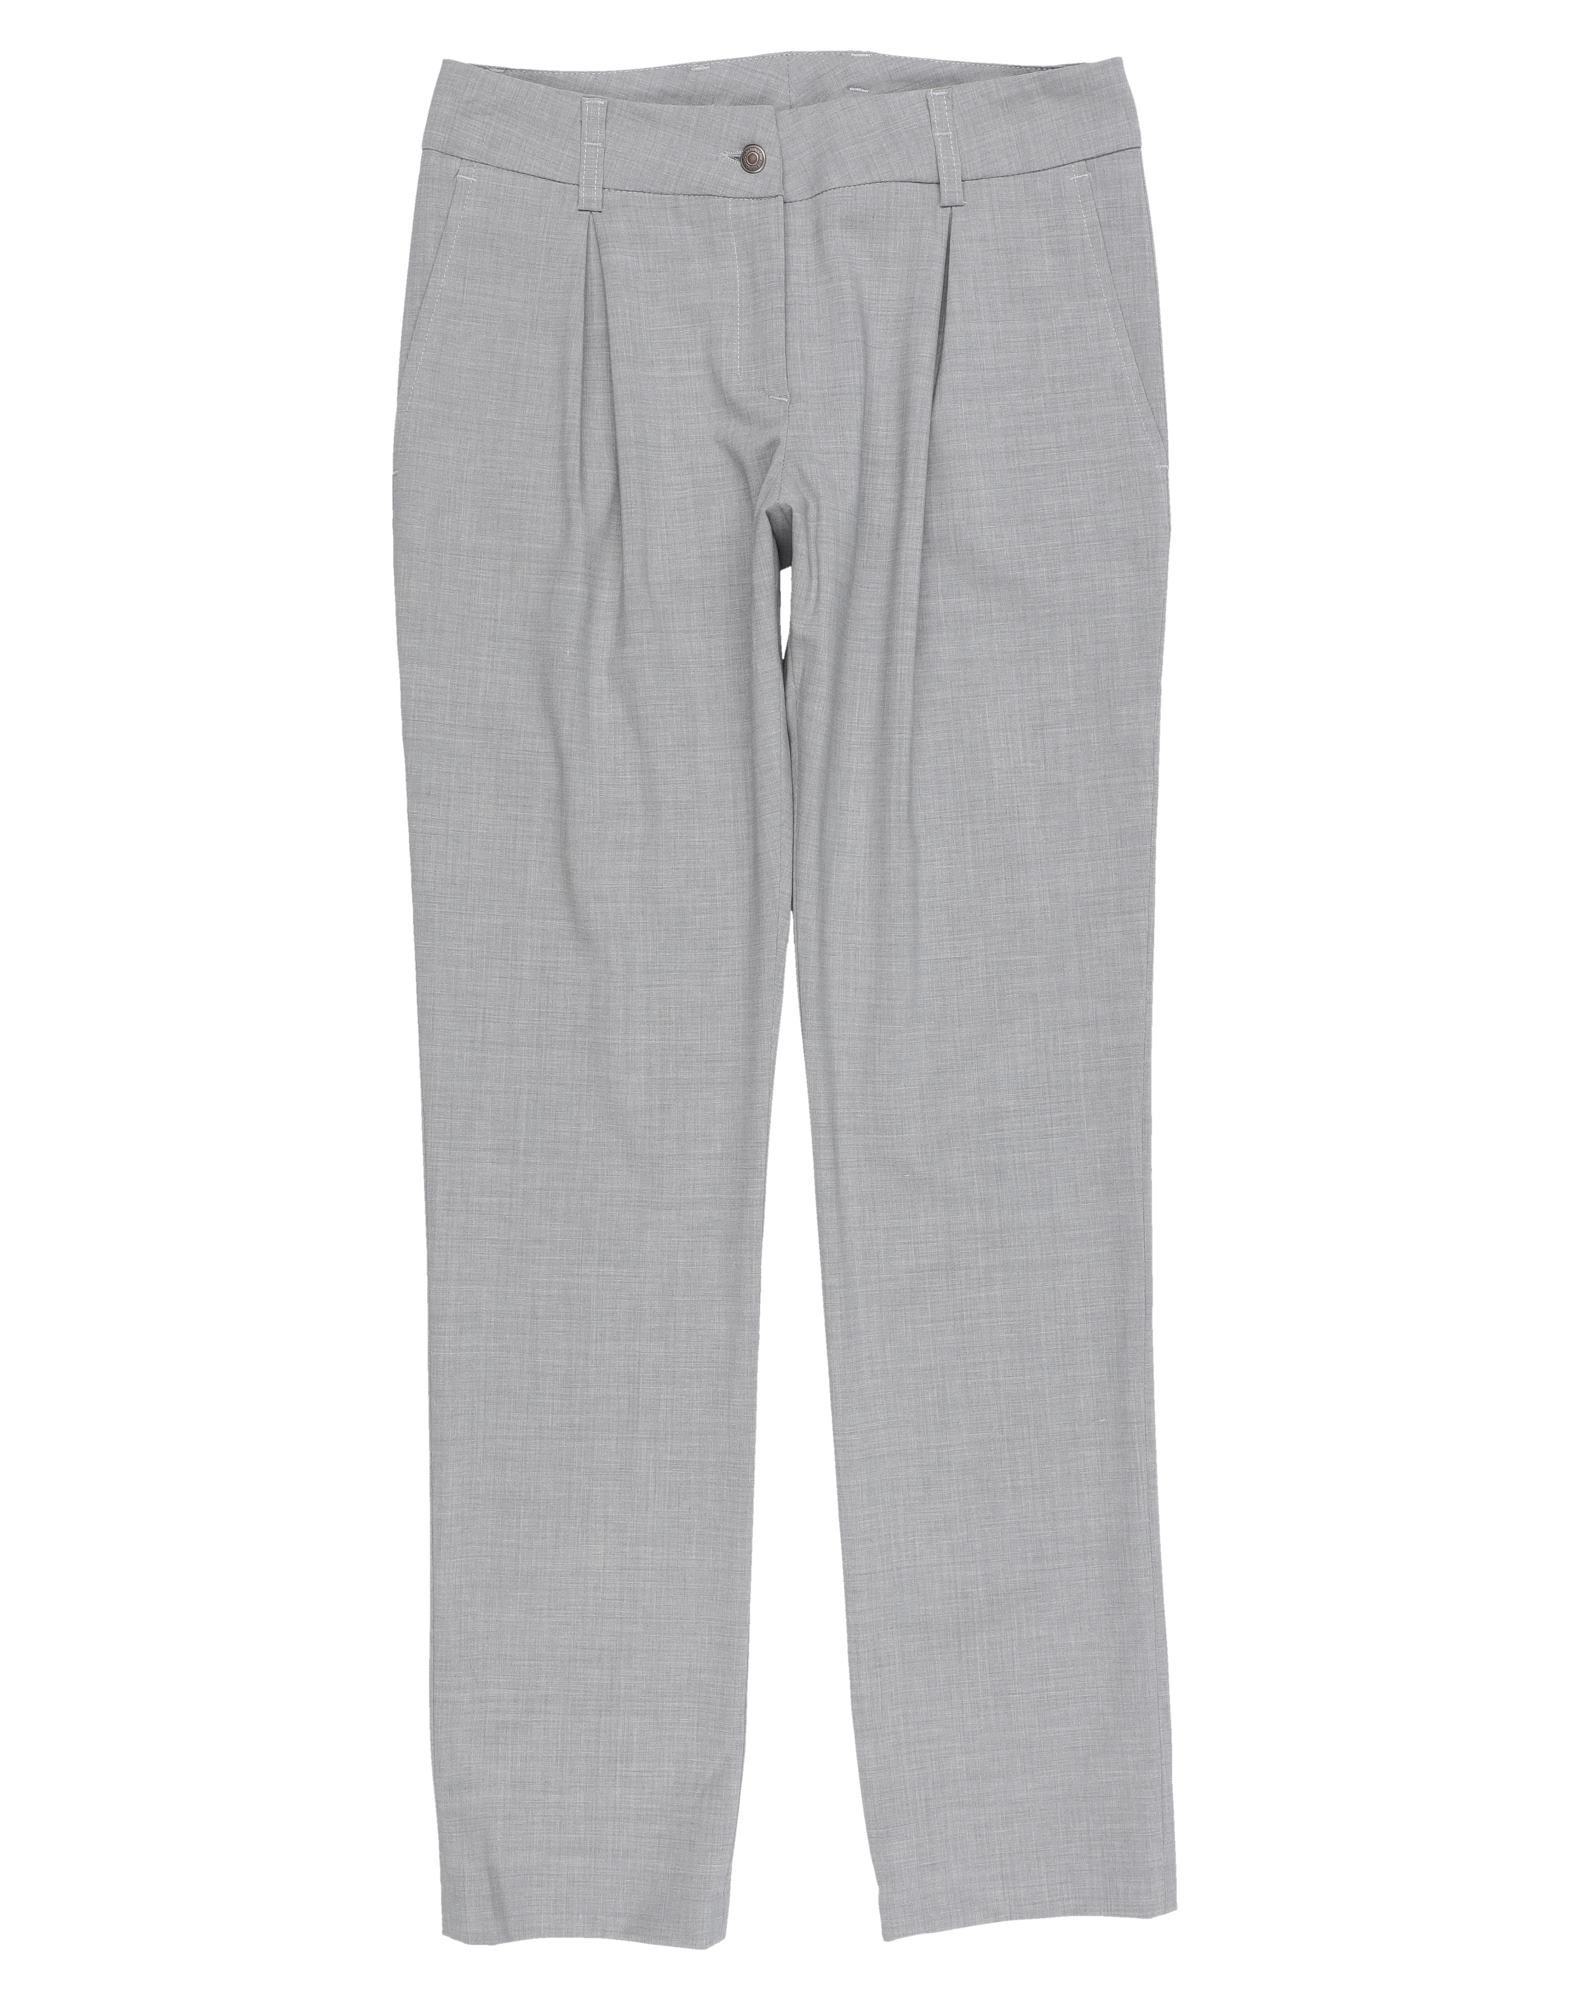 I Pinco Pallino Kids' Casual Pants In Gray